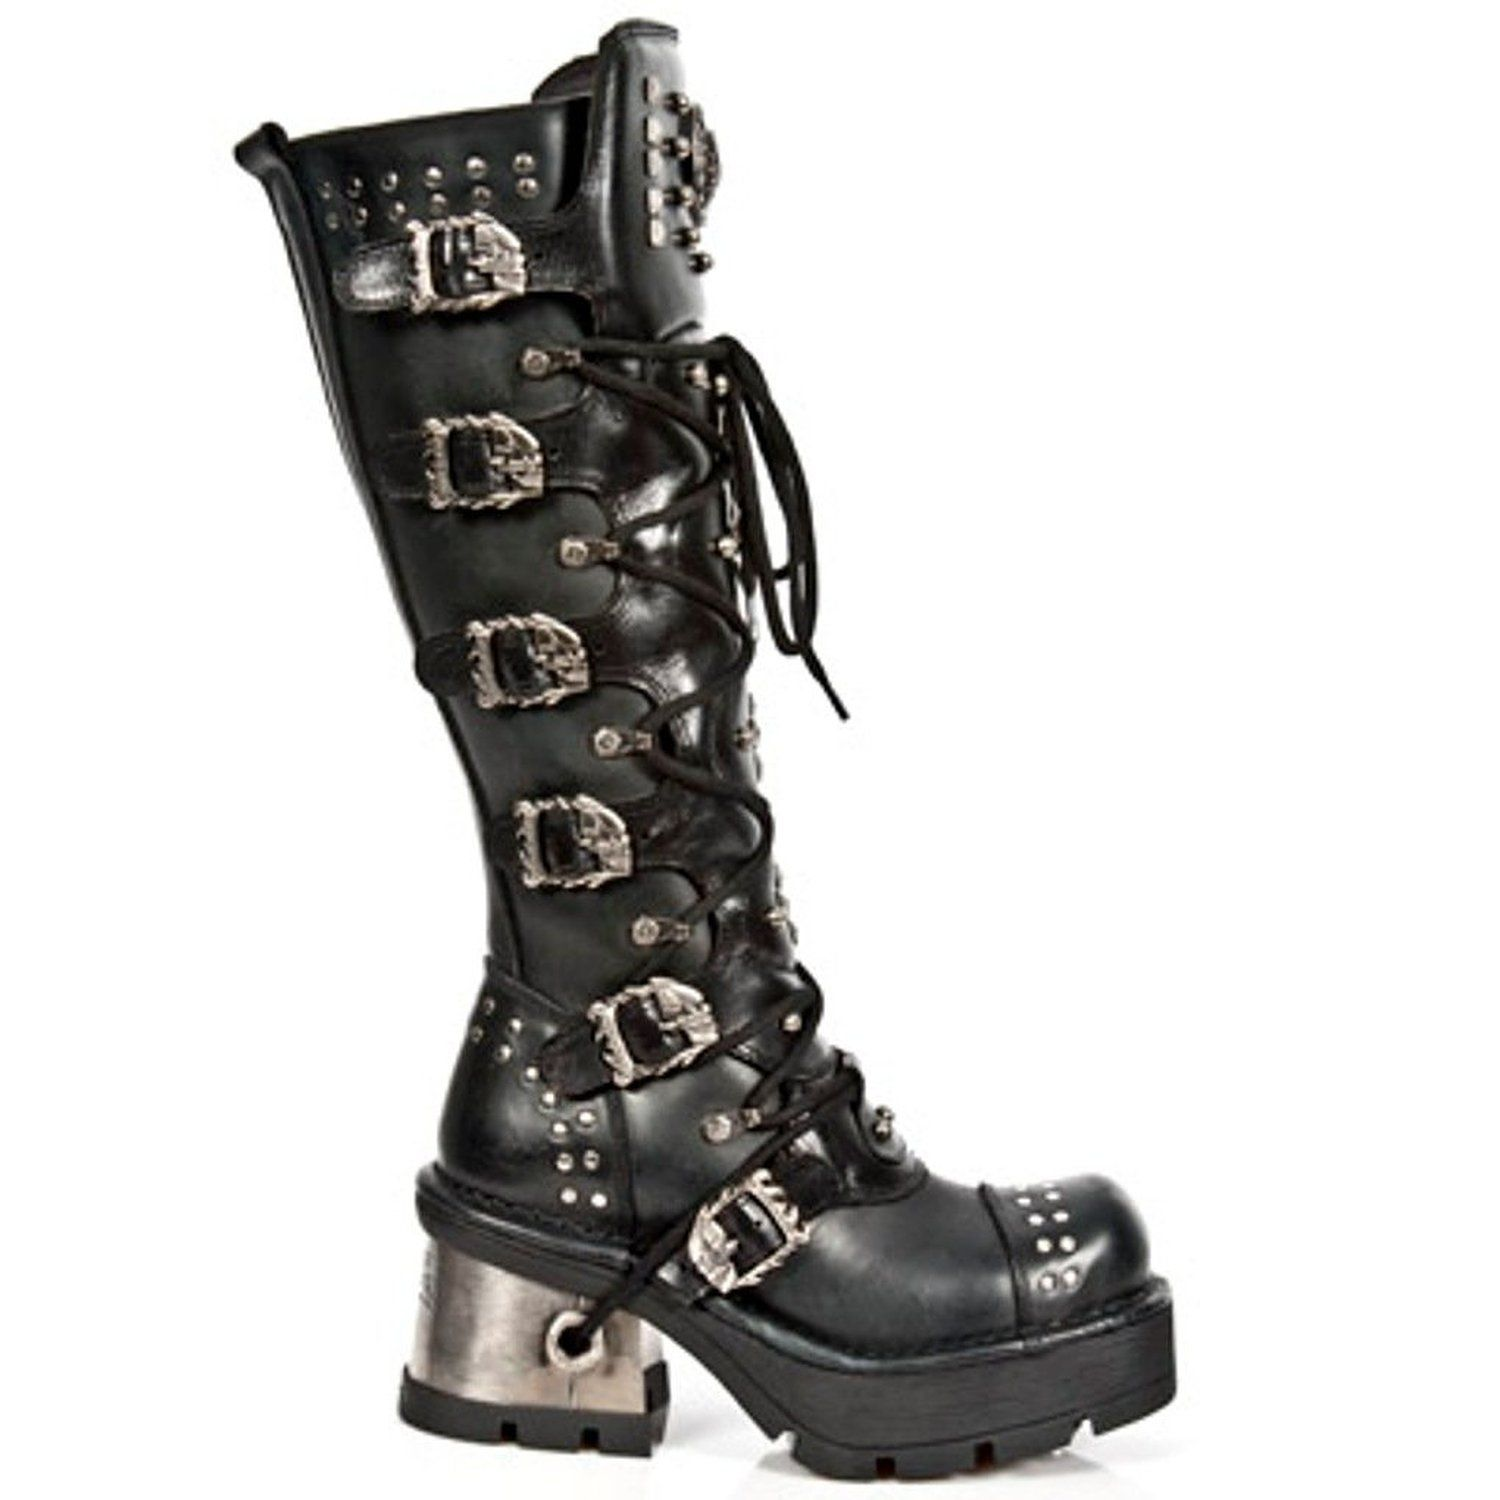 d9a69f100537 New Rock Tall Black Leather Reactor Boots Goth Gothic Goth Girls Goth  Guys Alternative Leather New Rocks Occult Chrome Metal